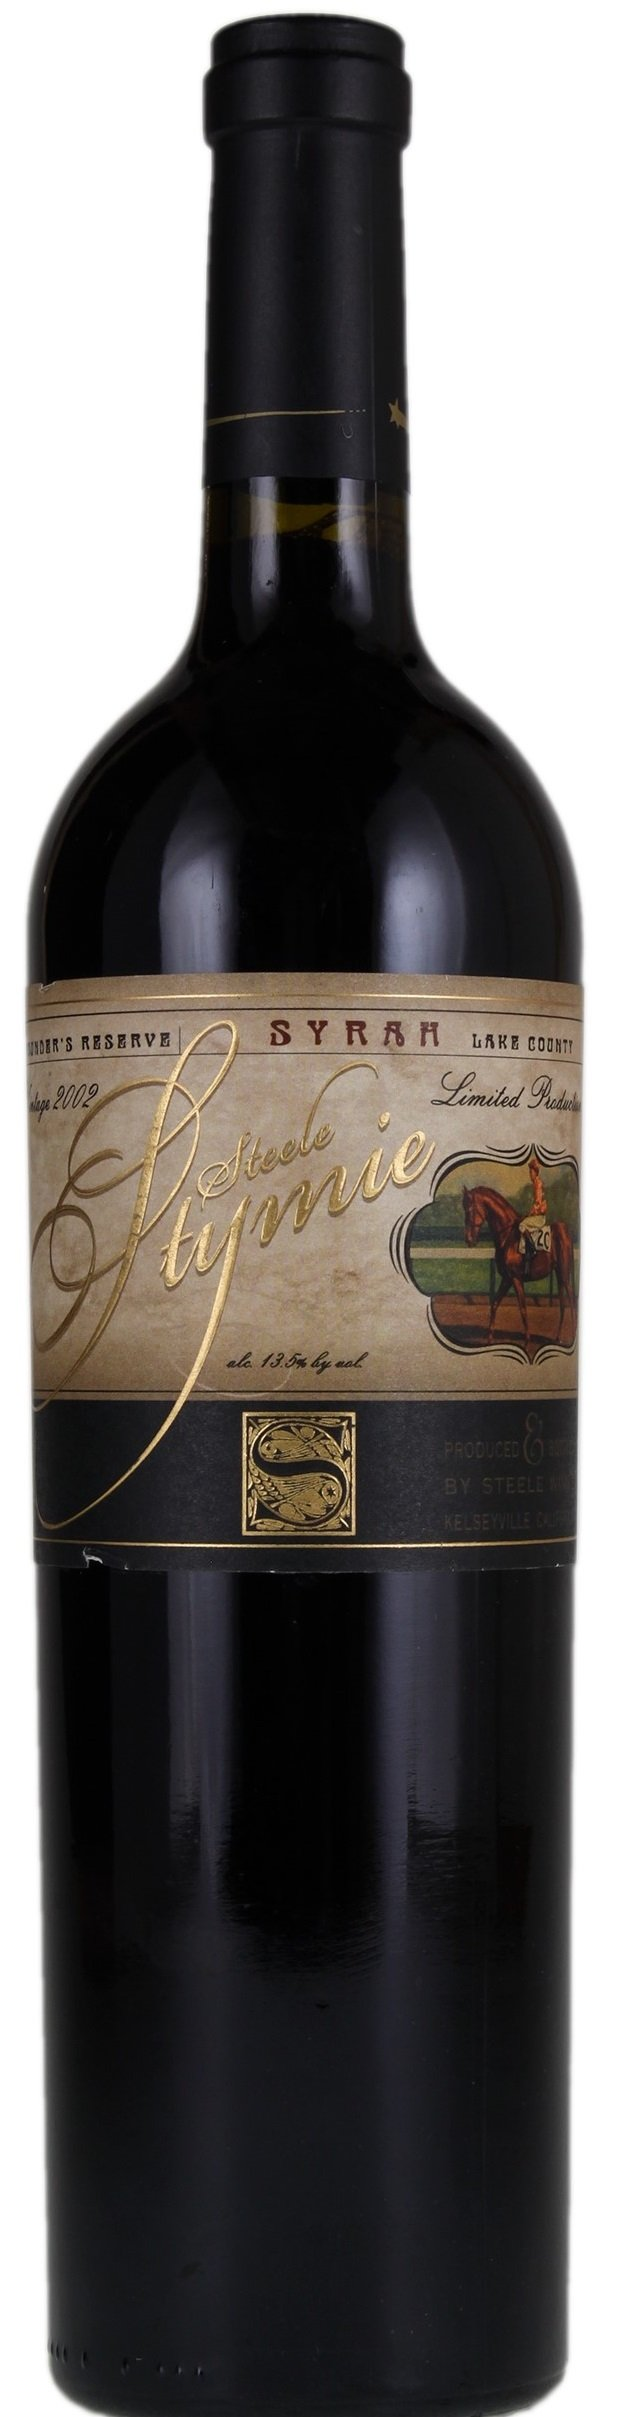 Steele Stymie Syrah Founder's Reserve 2012